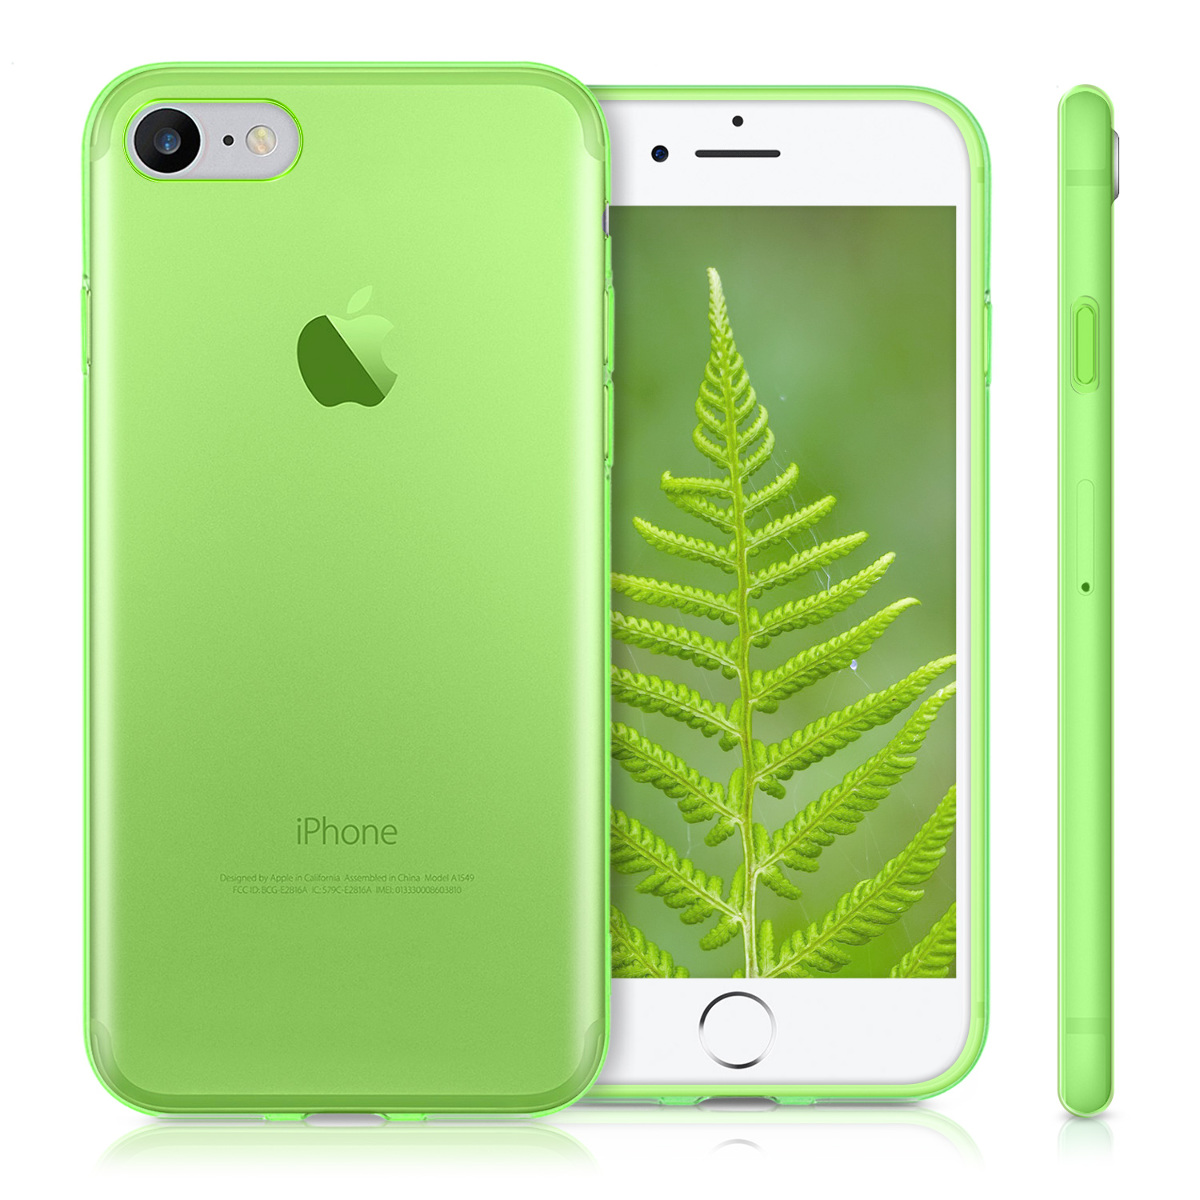 FUNDA-DE-TPU-SILICONA-PARA-APPLE-IPHONE-7-8-CARCASA-PROTECTORA-ESTUCHE-MoVIL